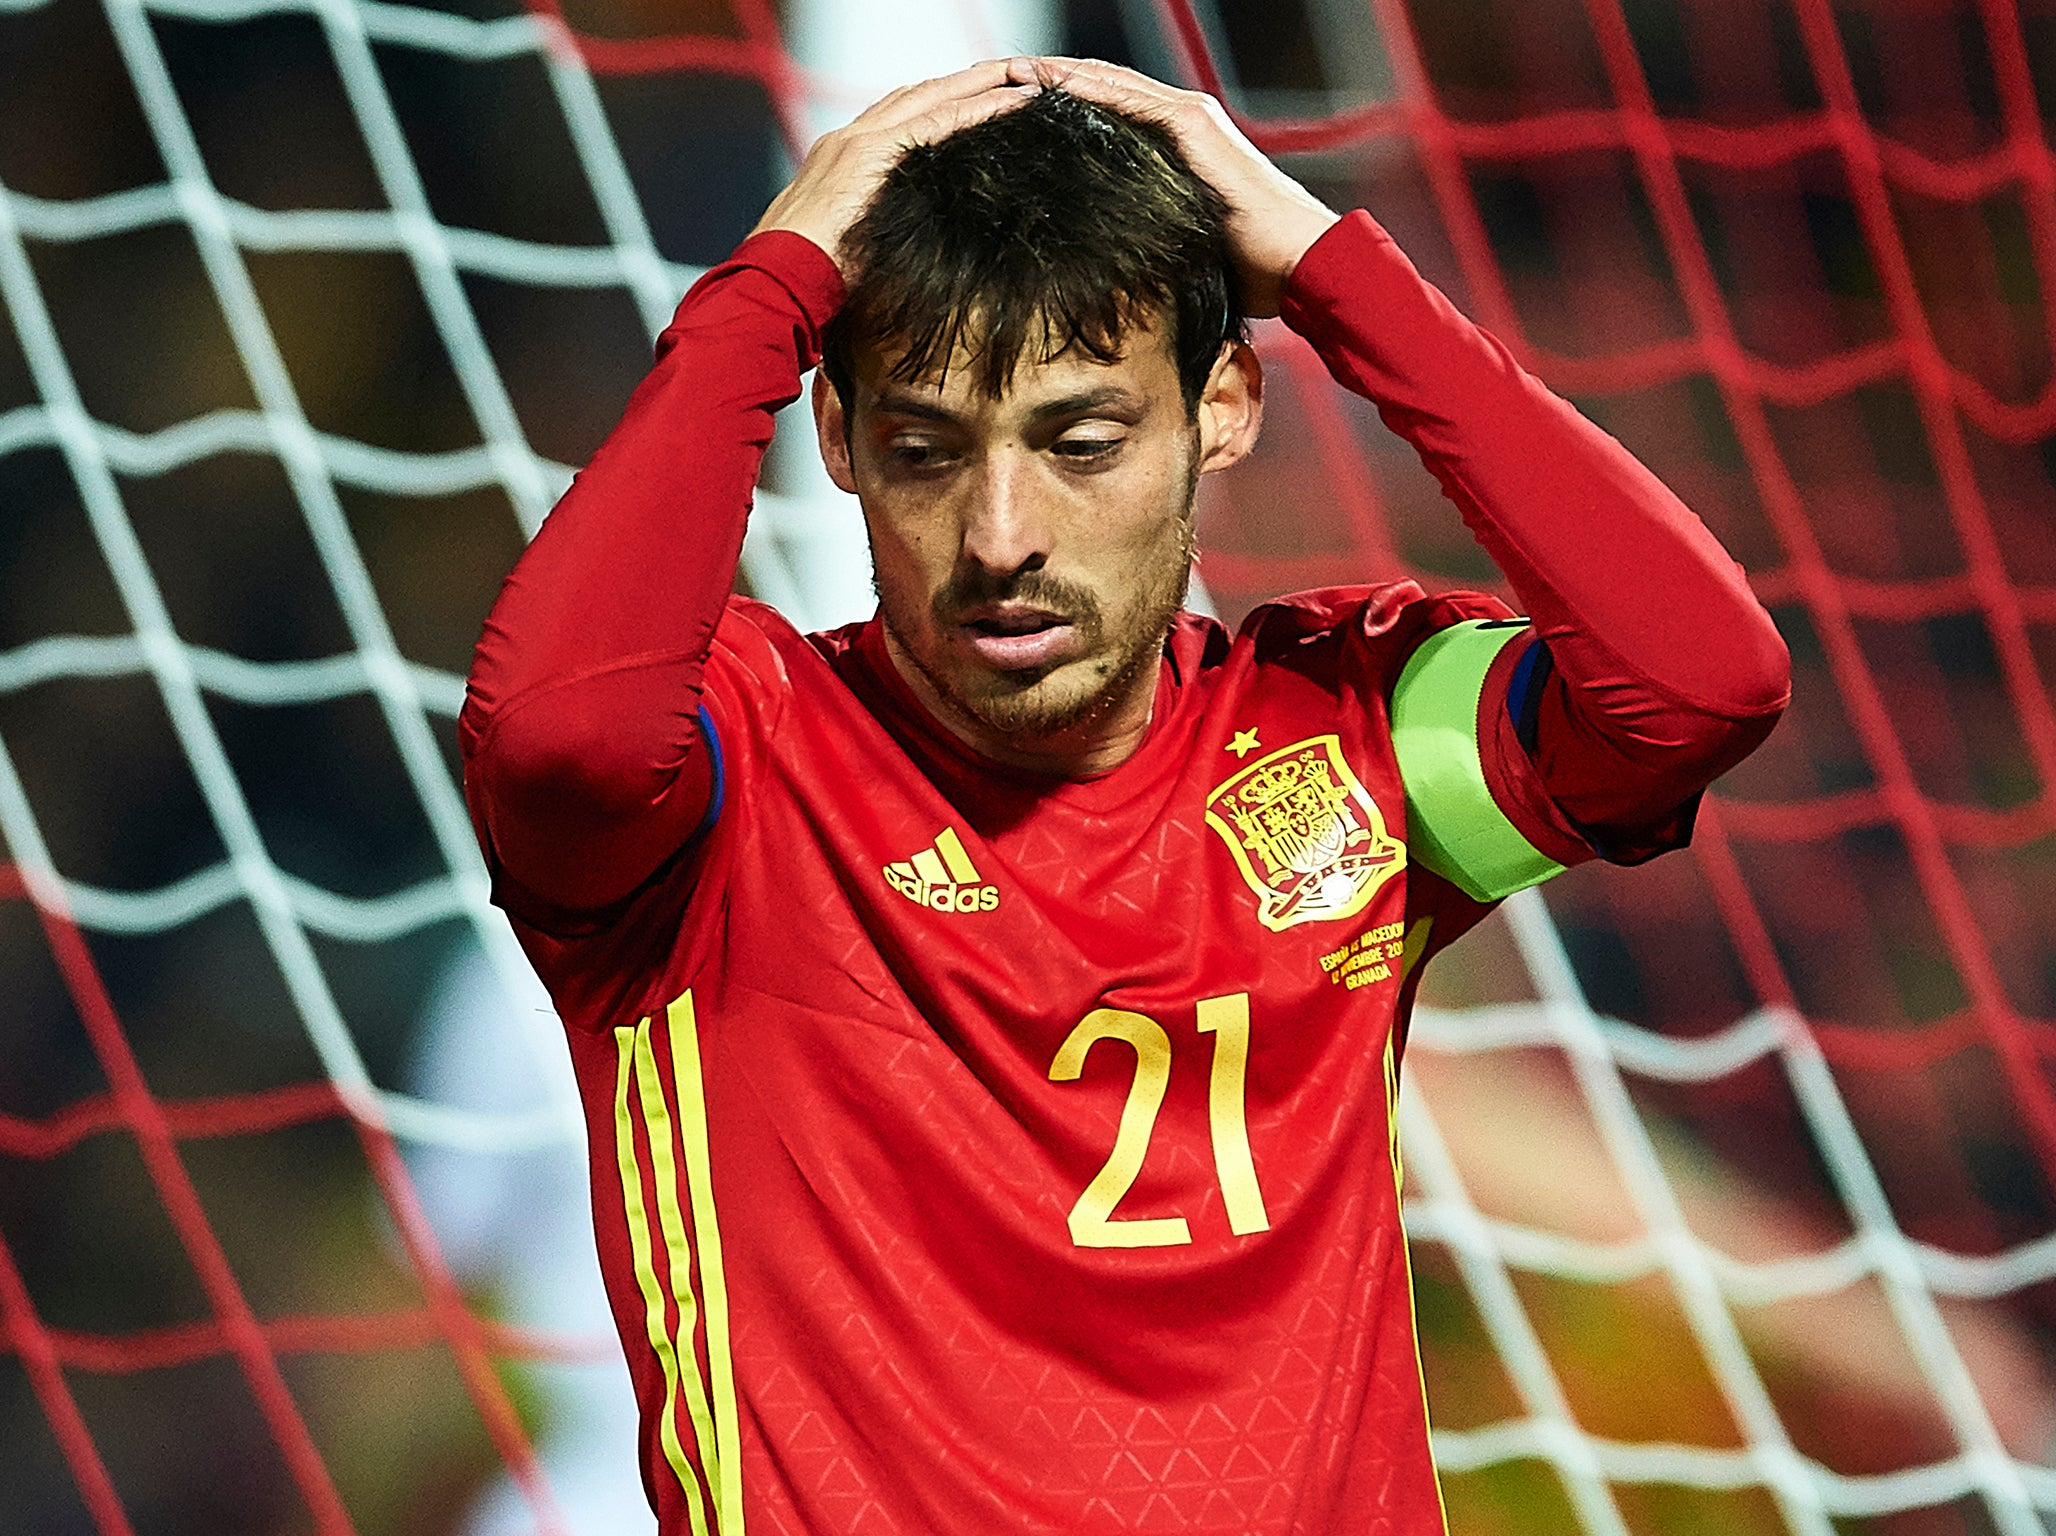 Spain World Cup ban: Spanish government blamed for risk of nation being kicked out of Russia 2018